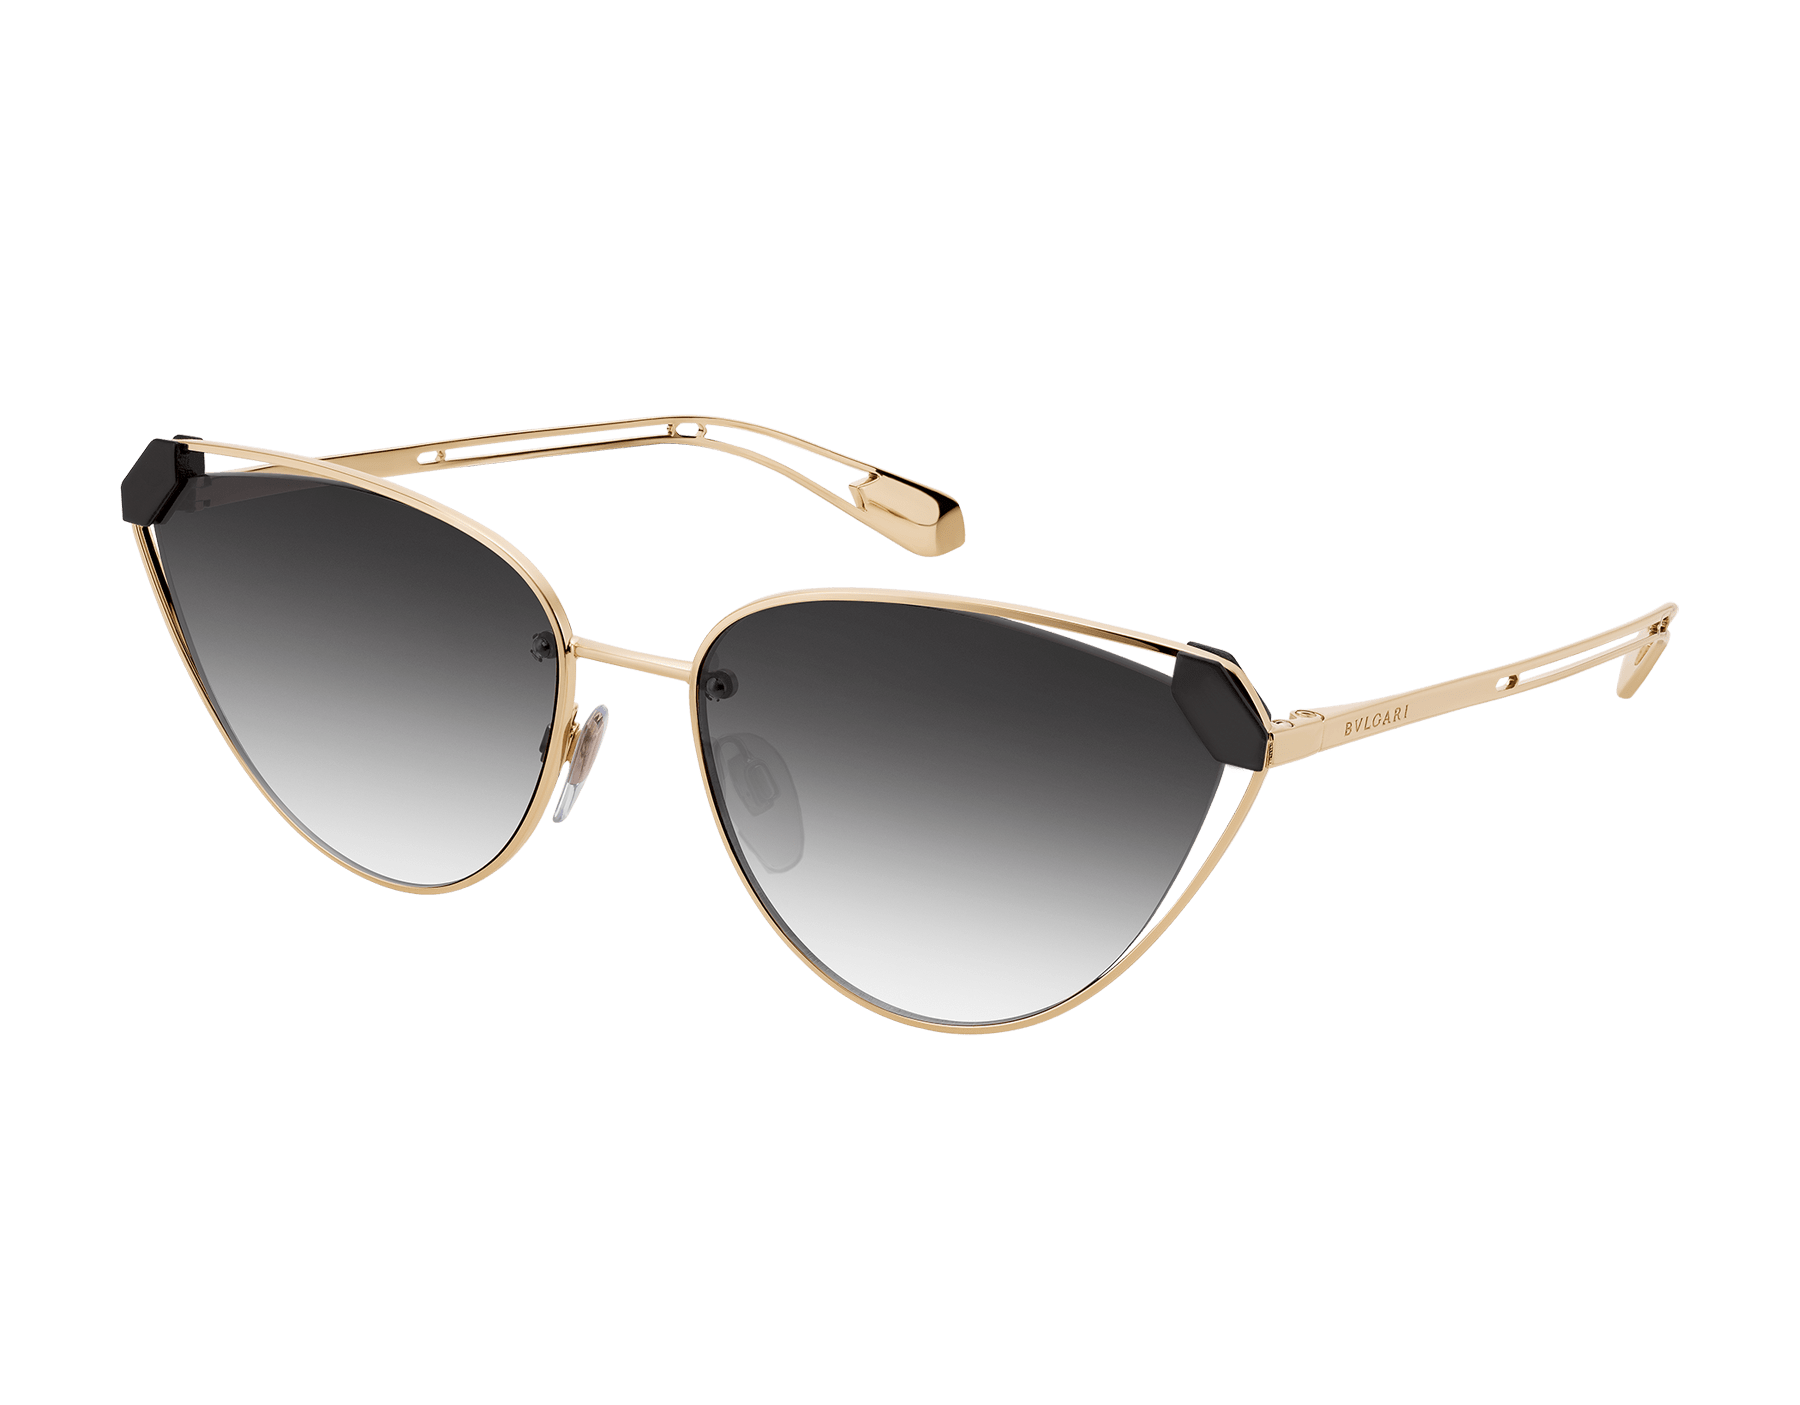 Bvlgari Serpenti Candy Scale narrow cat-eye metal sunglasses. 903728 image 1